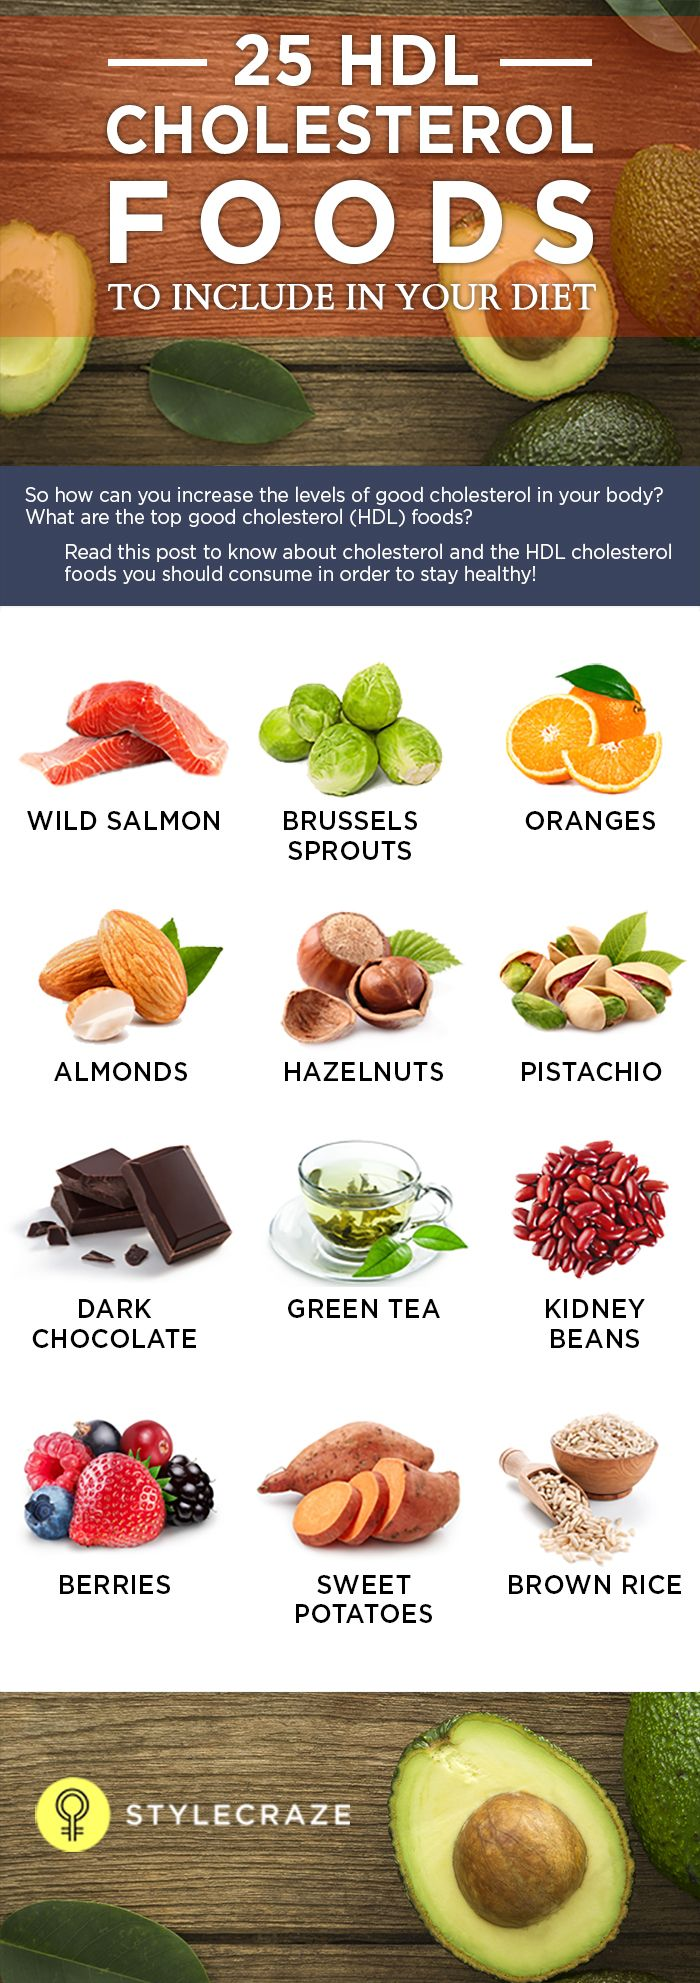 Foods that'll Give You the Good Kind of Cholesterol - Infographic